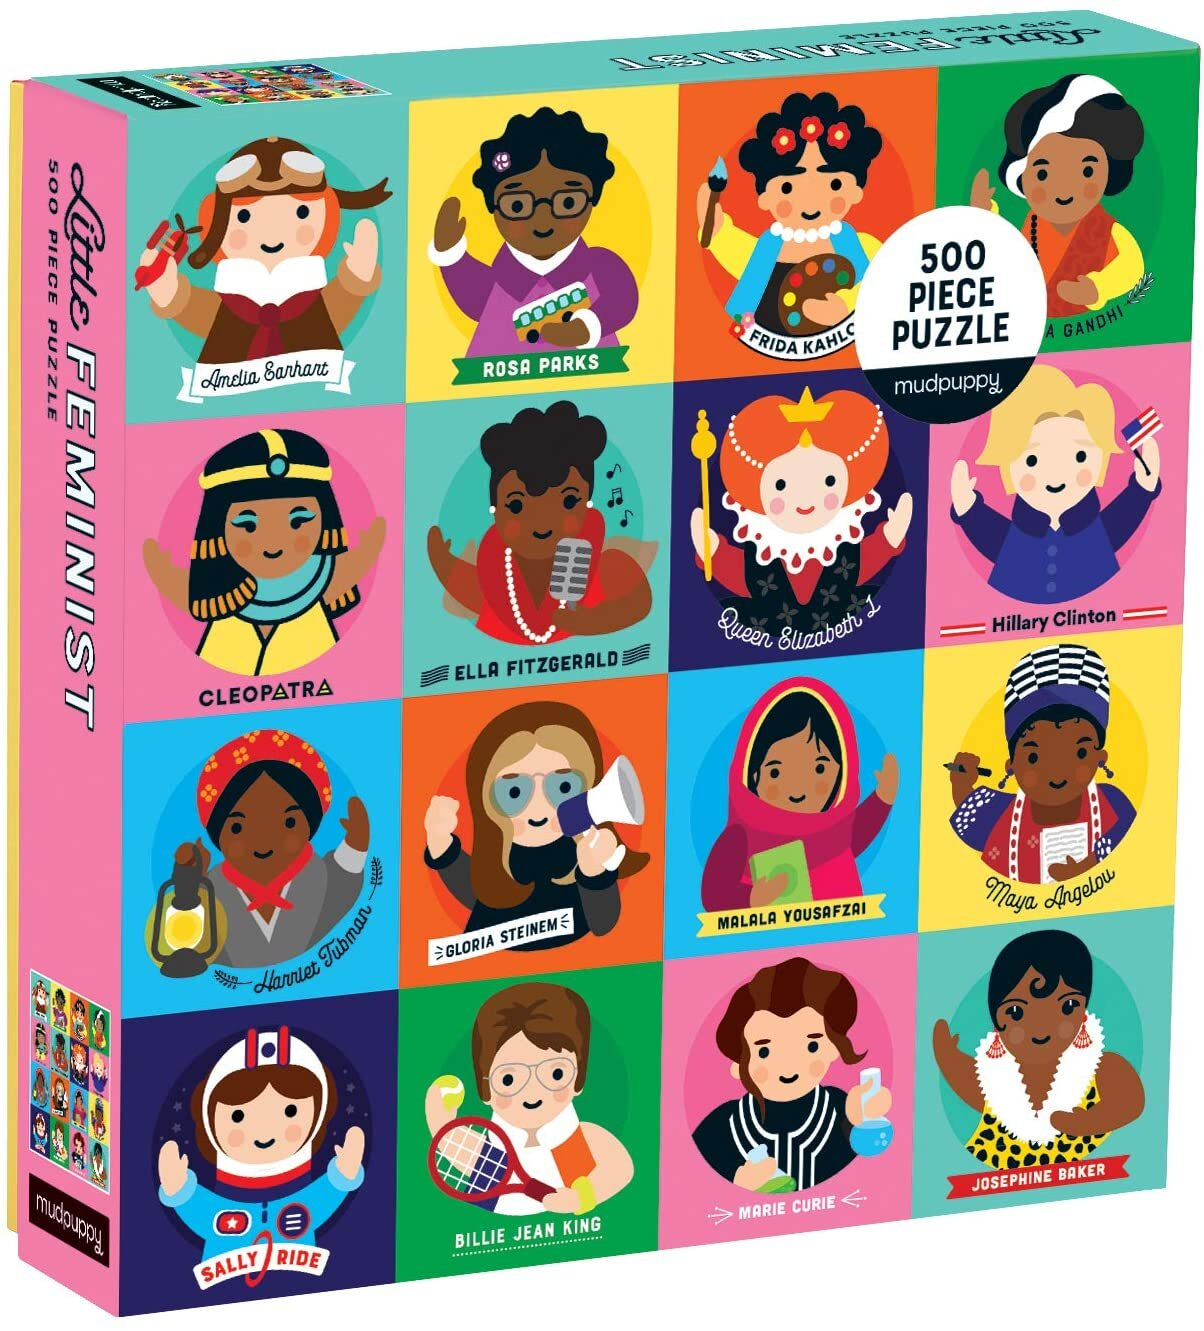 """[Image Description: A box that reads """" Little Feminist 500 Piece Puzzle."""" The box features cartoon illustrations of 16 famous women including Amelia Earhart, Rosa Parks, Frida Kahlo, Indira Gandhi, Cleopatra, Ella Fitzgerald, Queen Elizabeth I, Hillary Clinton, Harriet Tubman, Gloria Stinem, Malala Yousafzai, Maya Angelou, Sally Ride, Billie Jean King, Marie Curie, and Josephine Baker.]"""